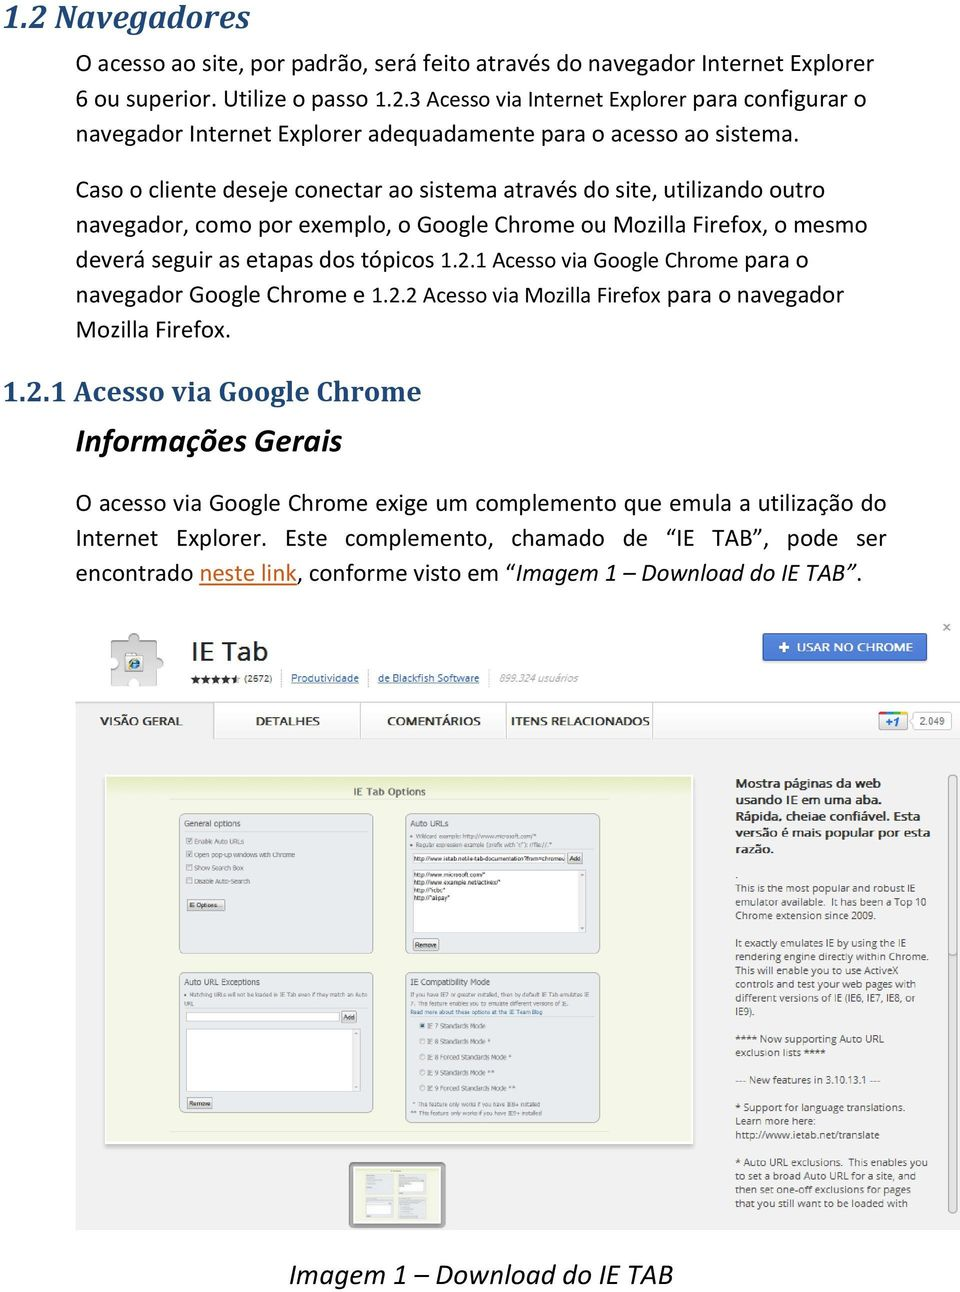 1 Acesso via Google Chrome para o navegador Google Chrome e 1.2.